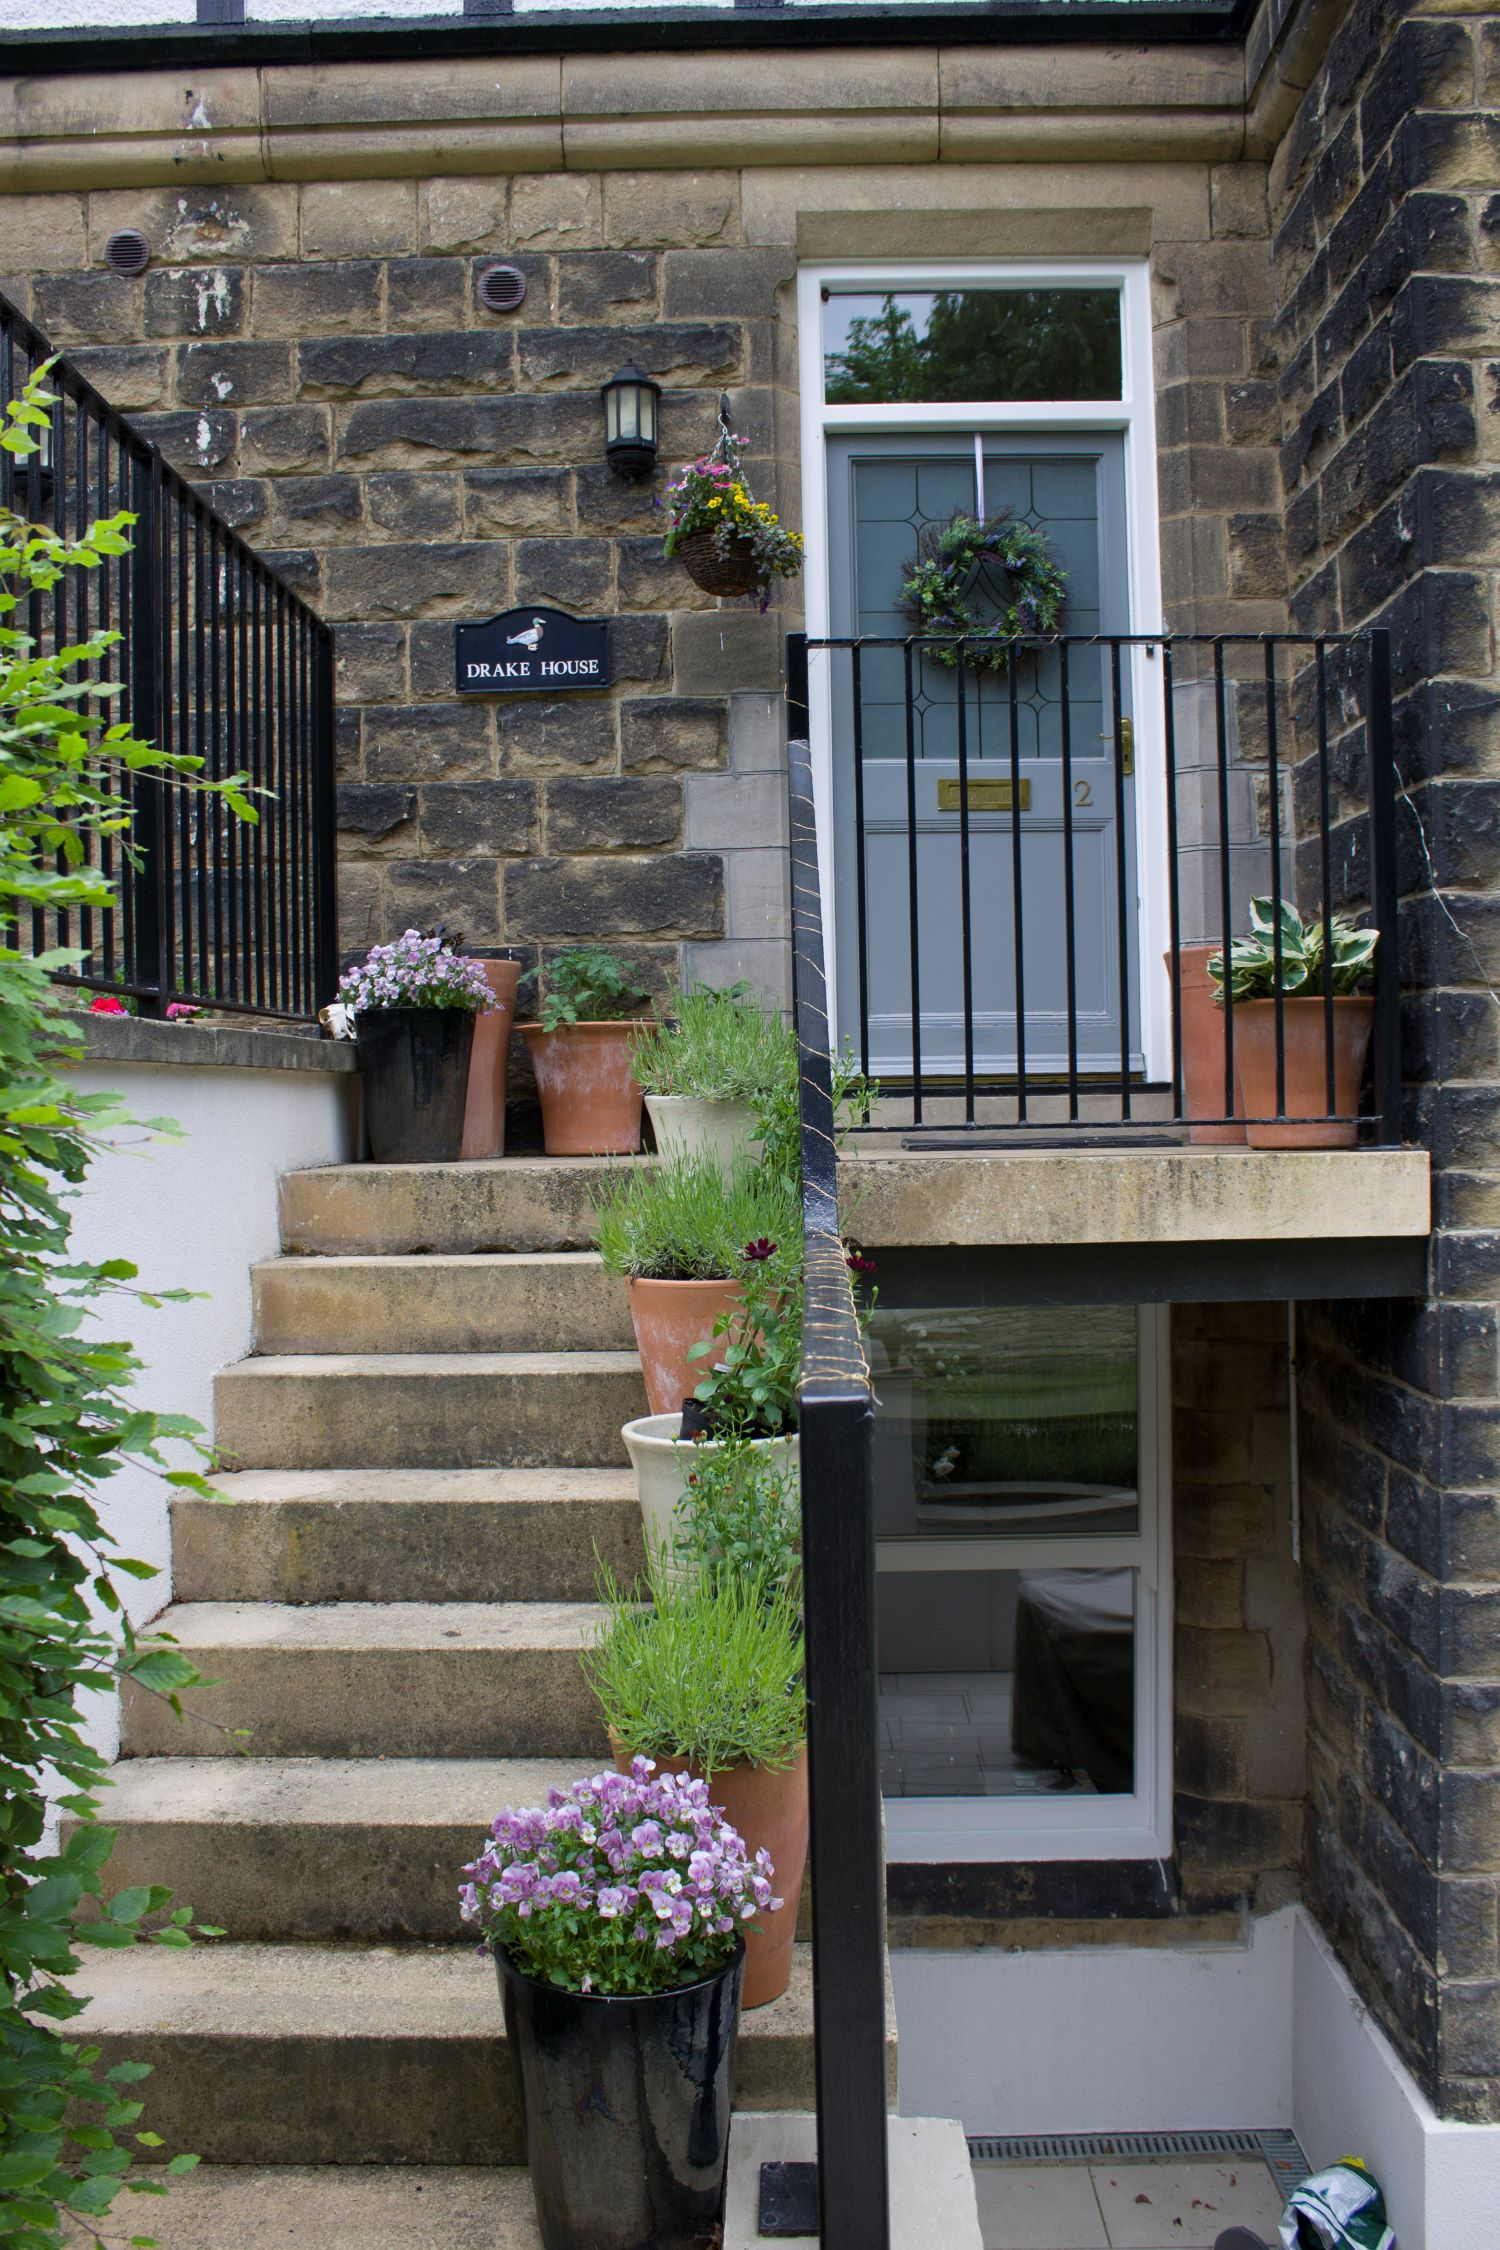 Pretty approach to the front door. The stone steps are softened by potted plants